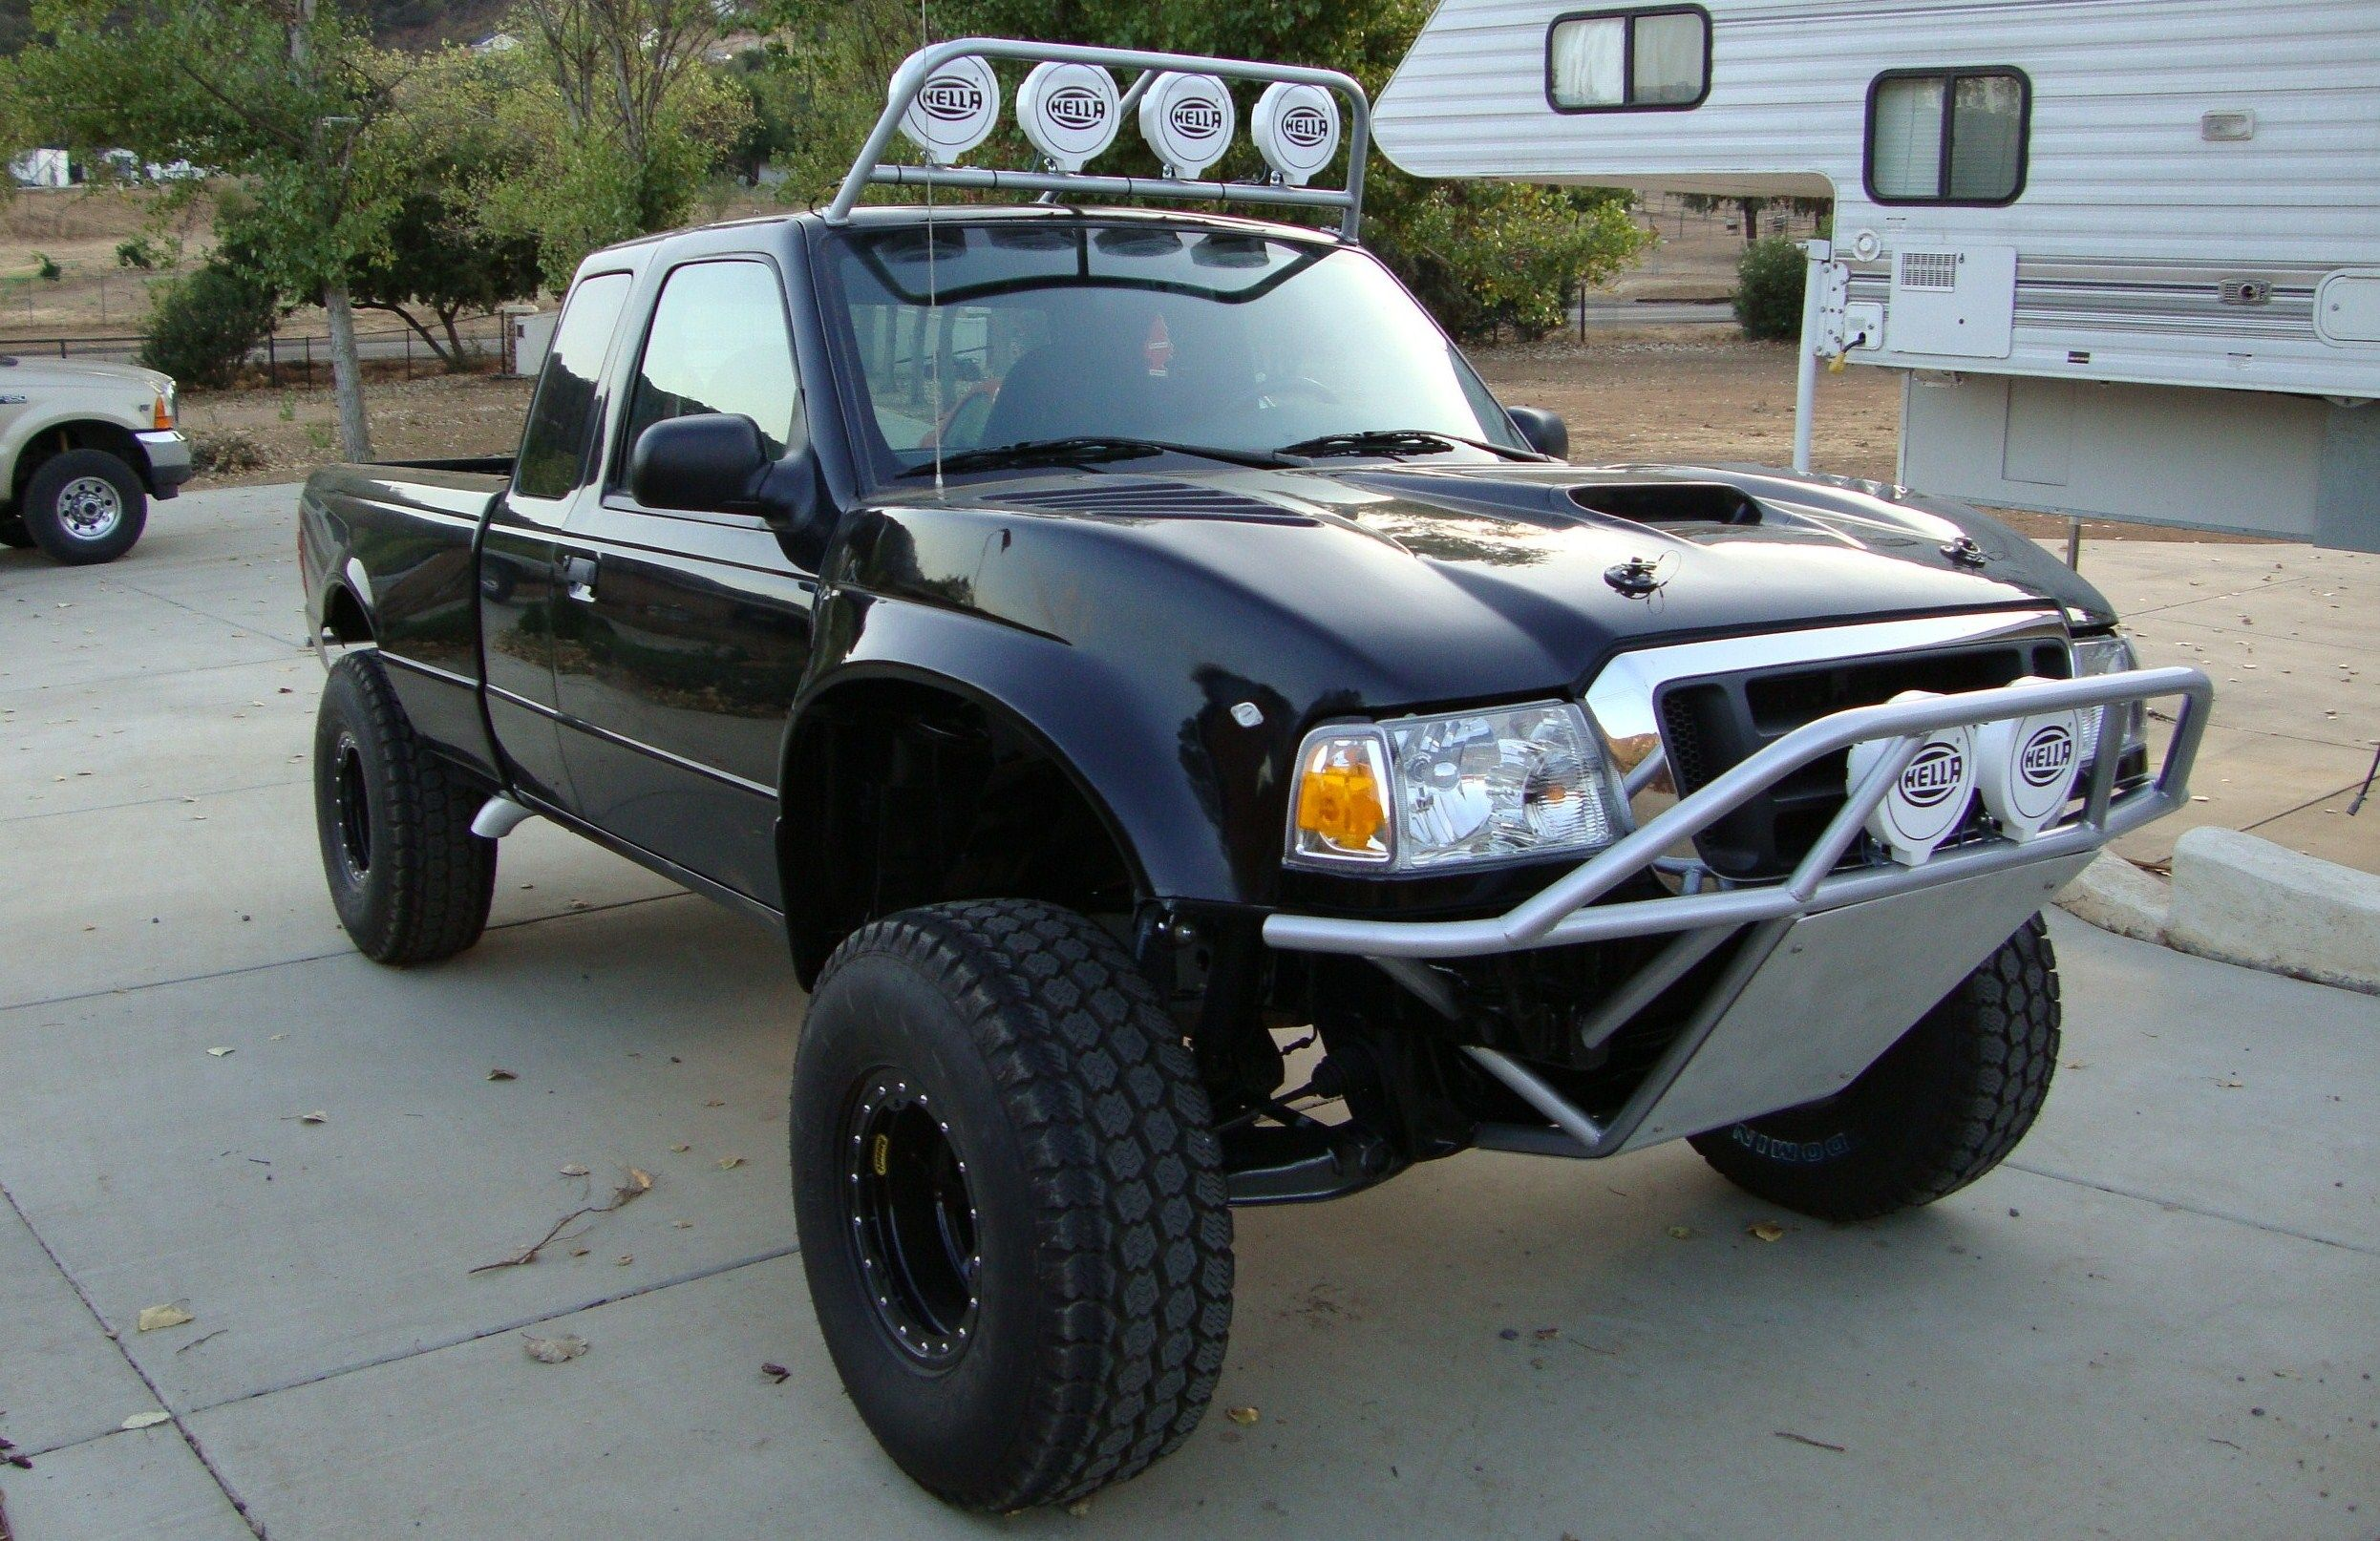 37 Awesome Ford Ranger Off Road Images Ford Ranger 4x4 Ford Ranger Ford Ranger Prerunner